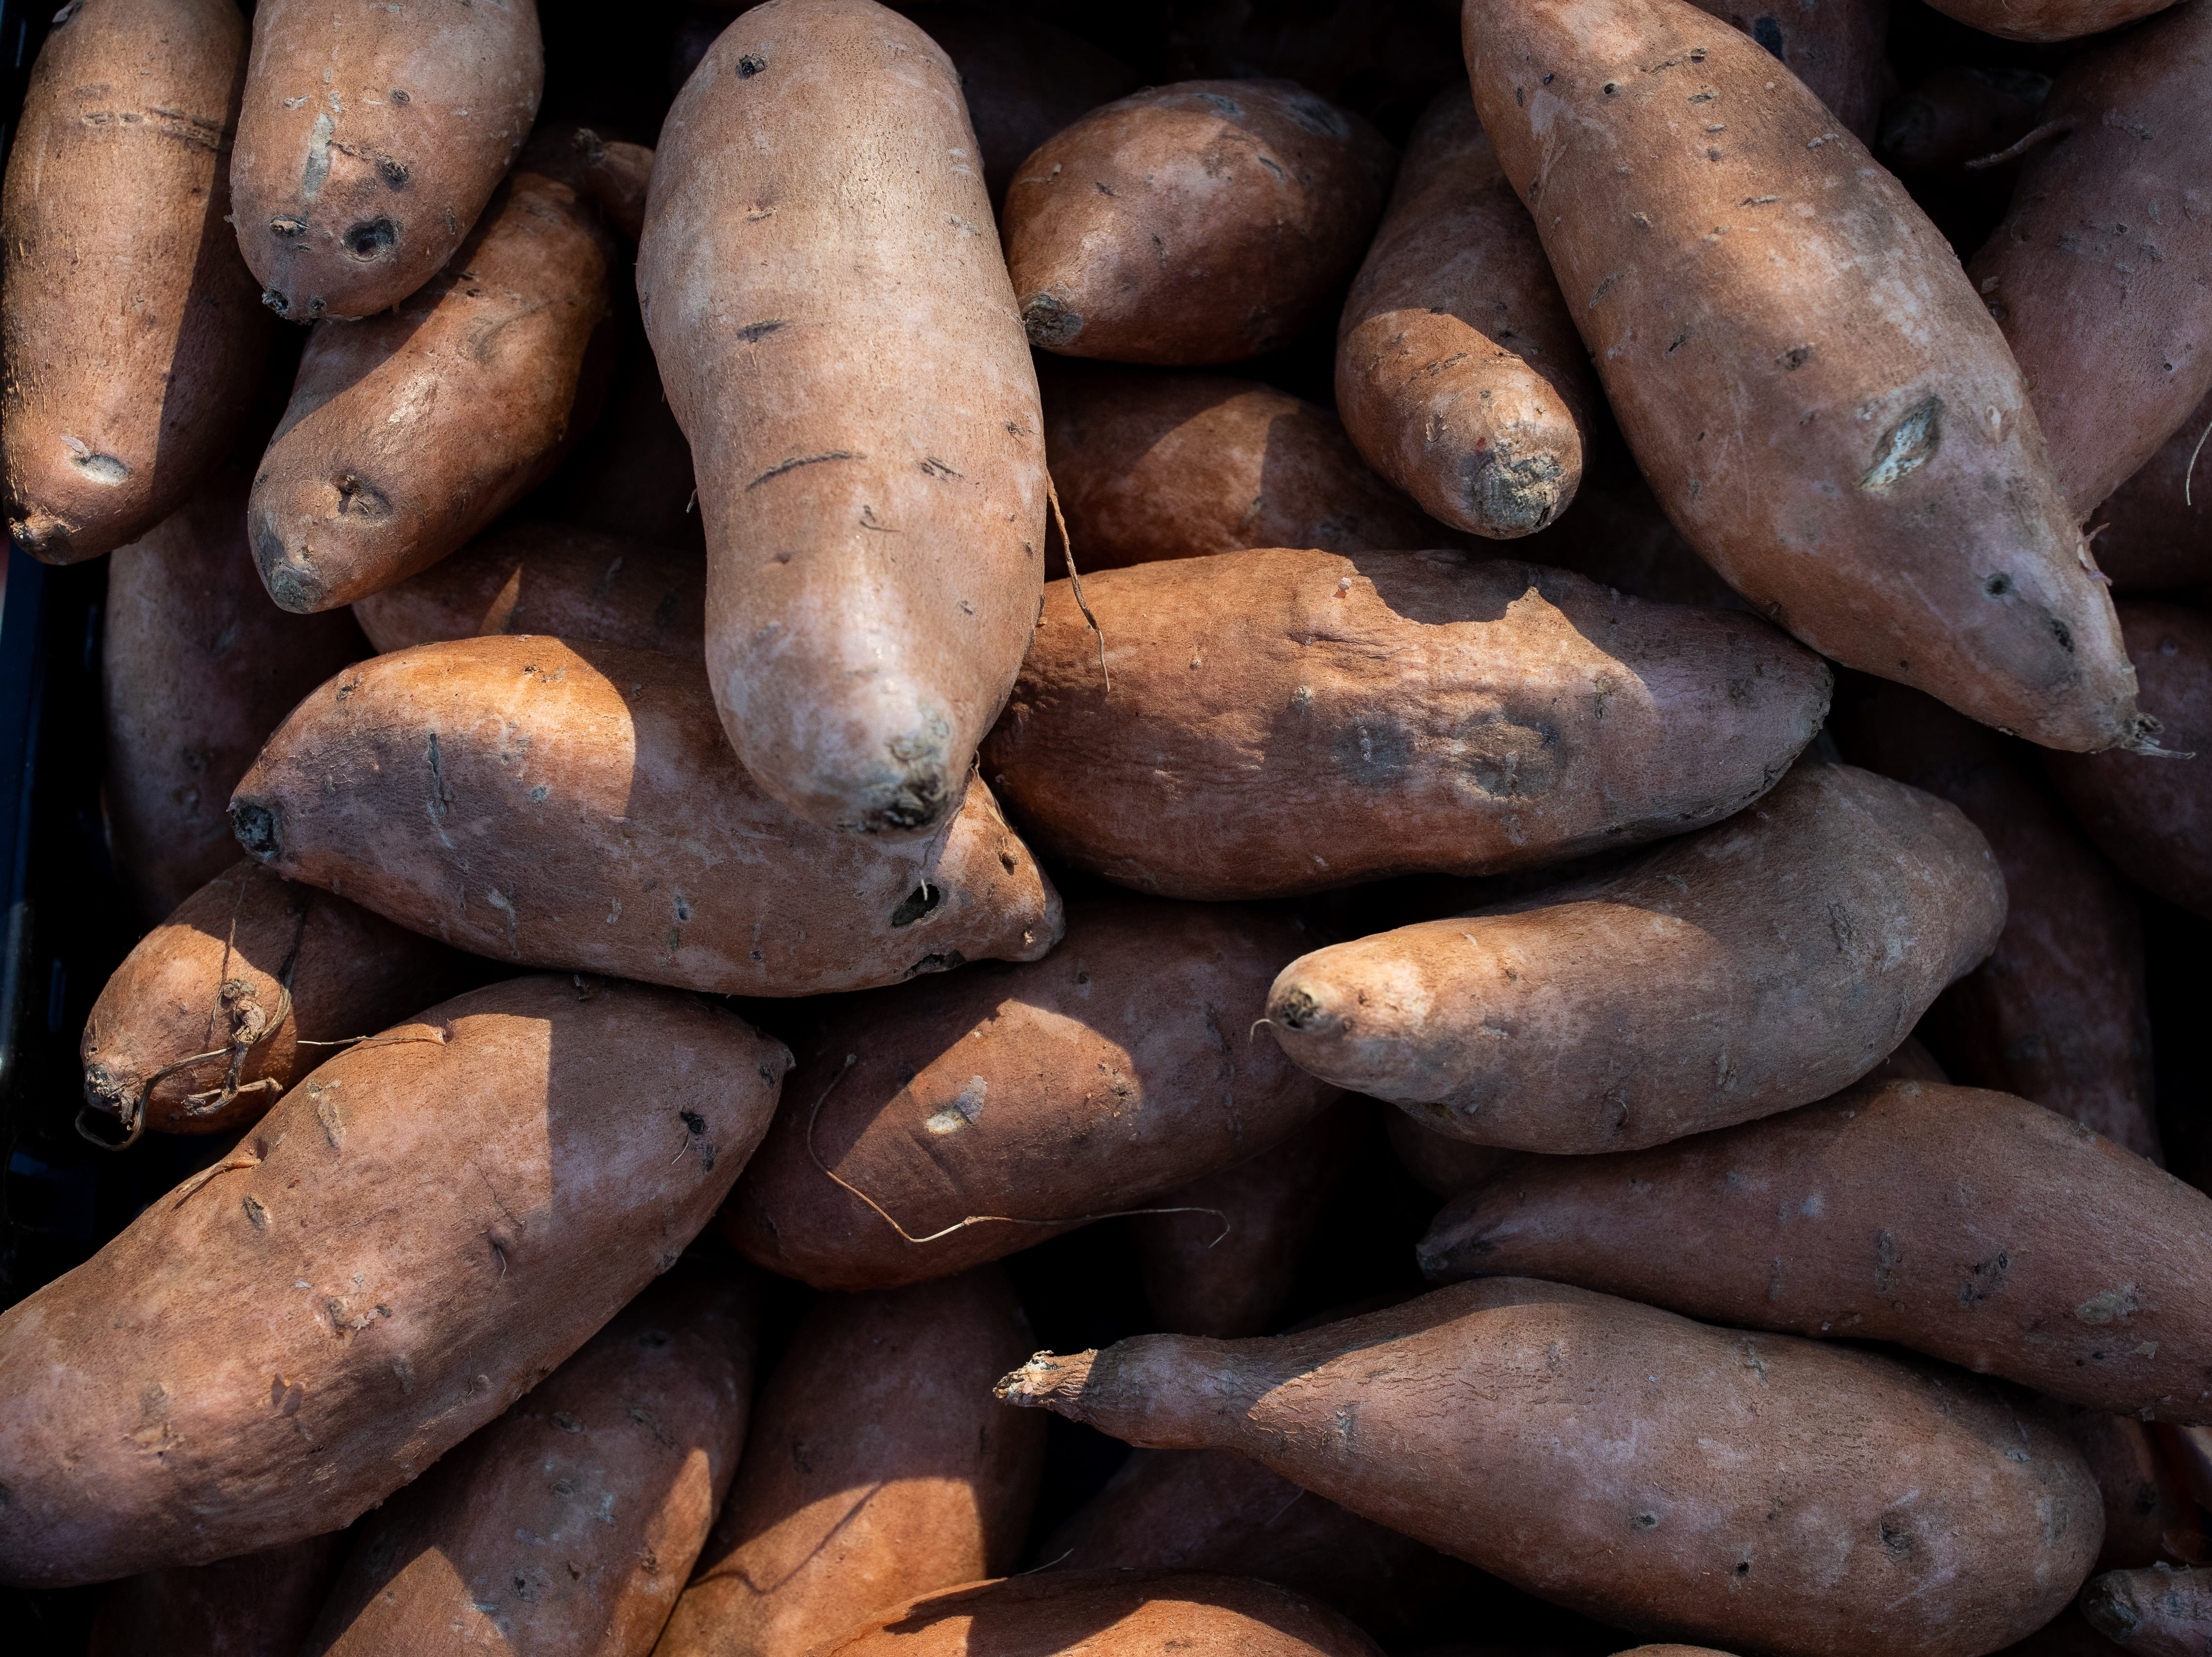 Sweet potatoes at the Corpus Christi Southside Farmers' Market located at 5800 Everhart Road on Saturday, Jan. 5, 2019.